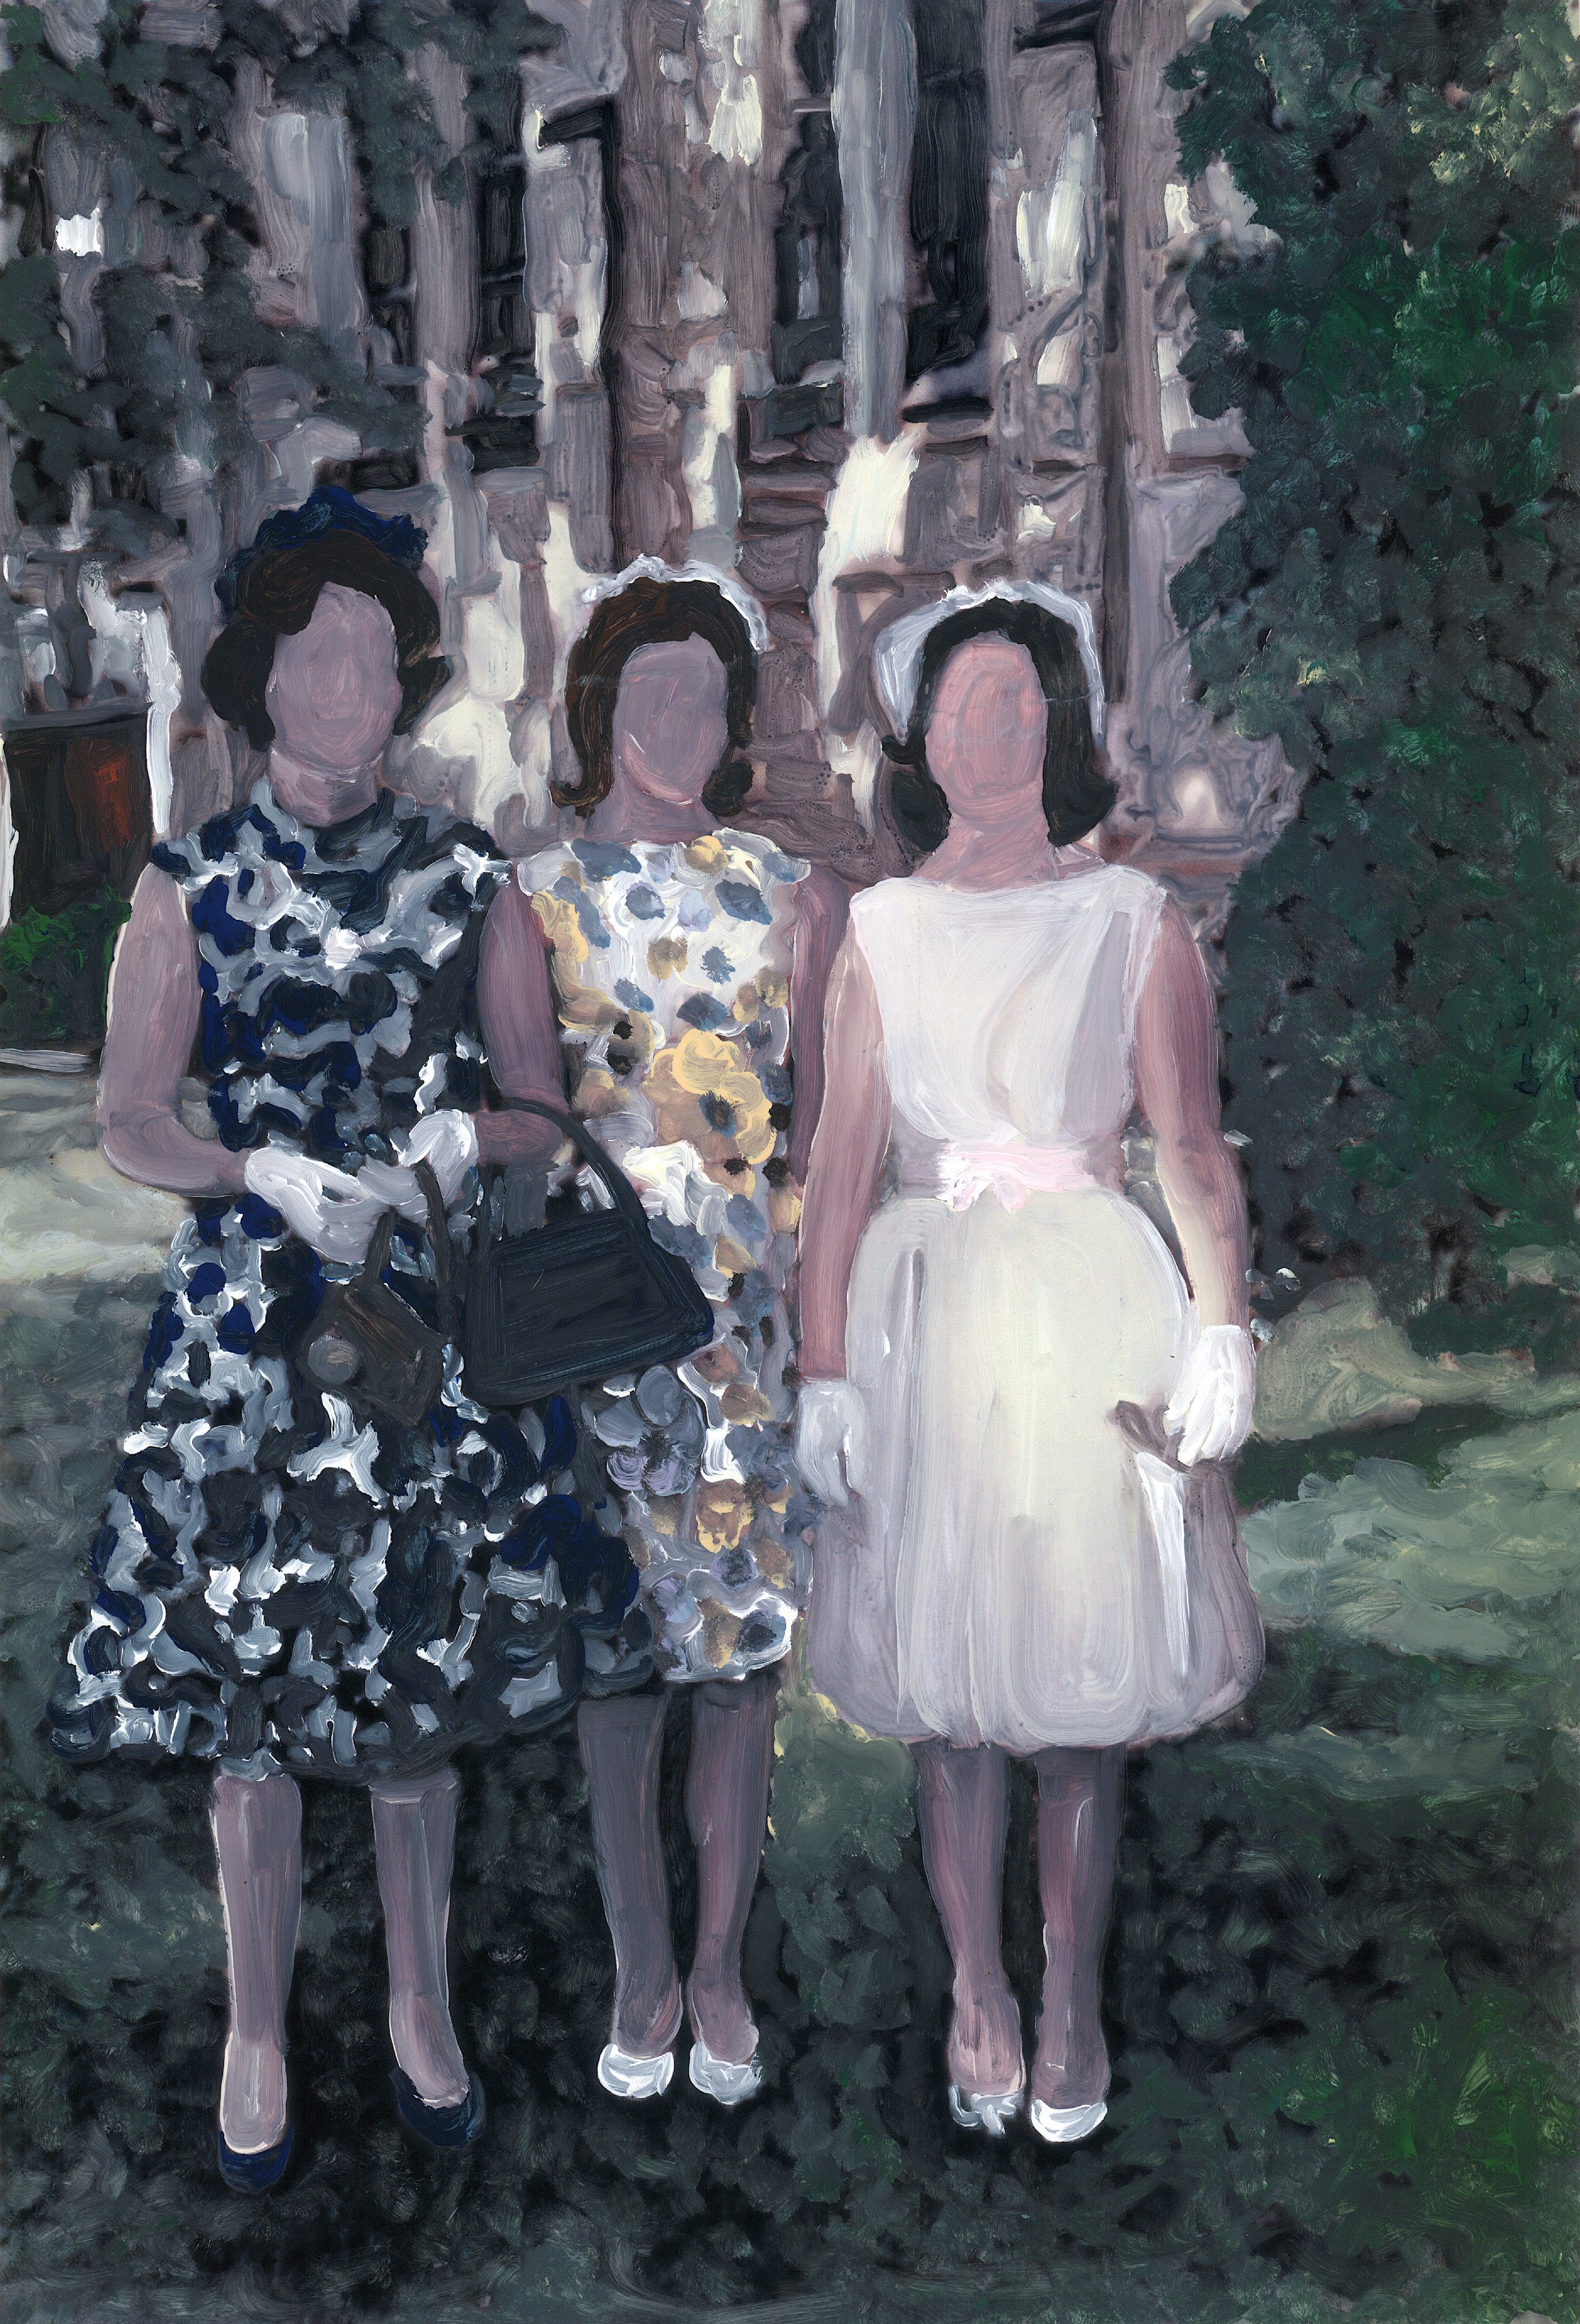 Christy Powers   mother and daughters   2018  Ink, gouache, watercolor, and acrylic on Yupo  Signed and dated by the artist,  verso   Image/sheet: 20 x 16 inches  Framed: 21 x 17 inches